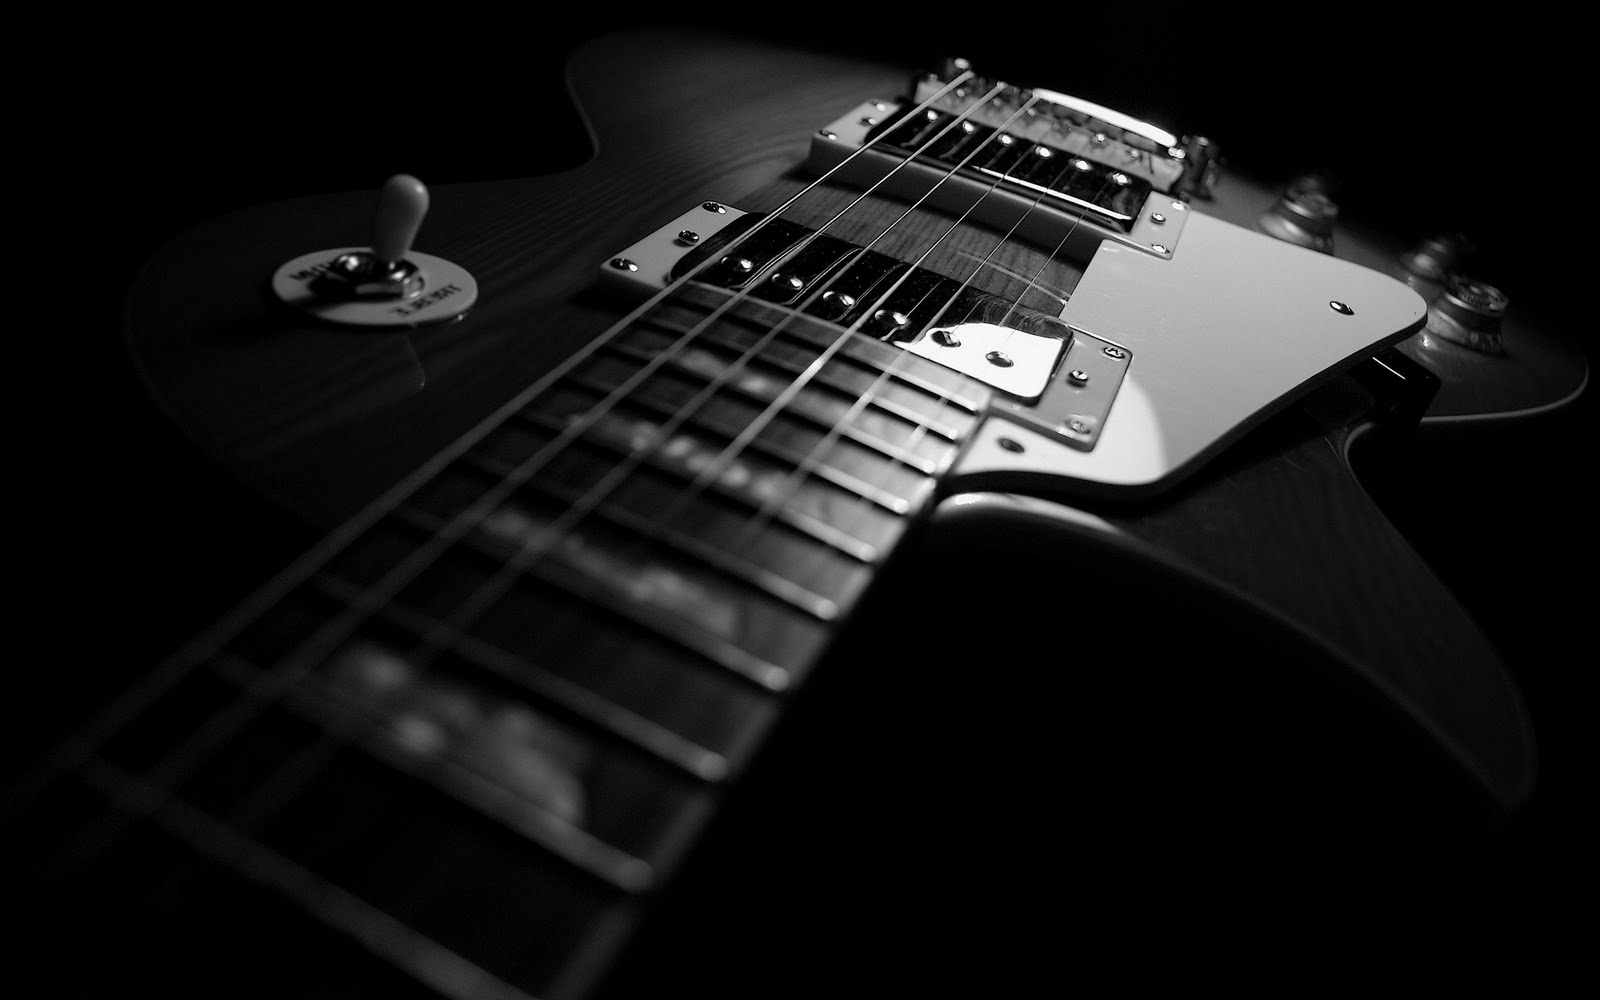 Wallpaper Guitar Dark Hd Music 6405: Best Wallpaper Collection: Best Black And White Wallpapers